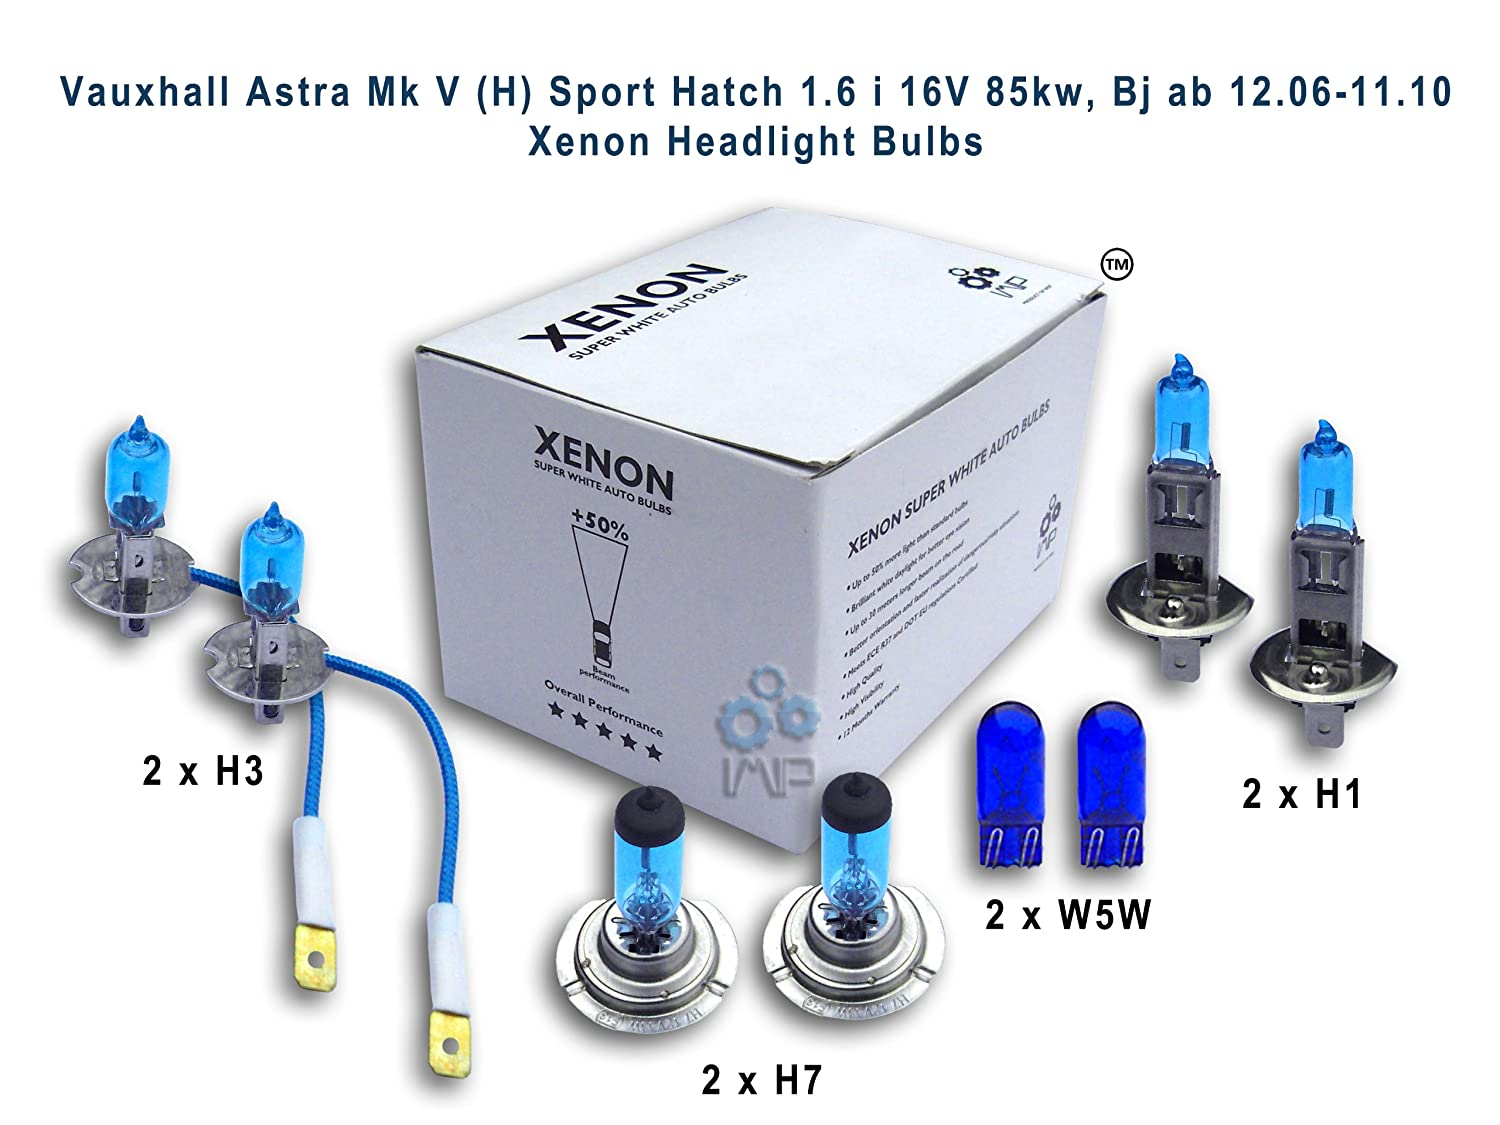 IMIP/Genius Xenon Bulb Kits Xenon Headlight Bulbs H3, H1, H7, W5W